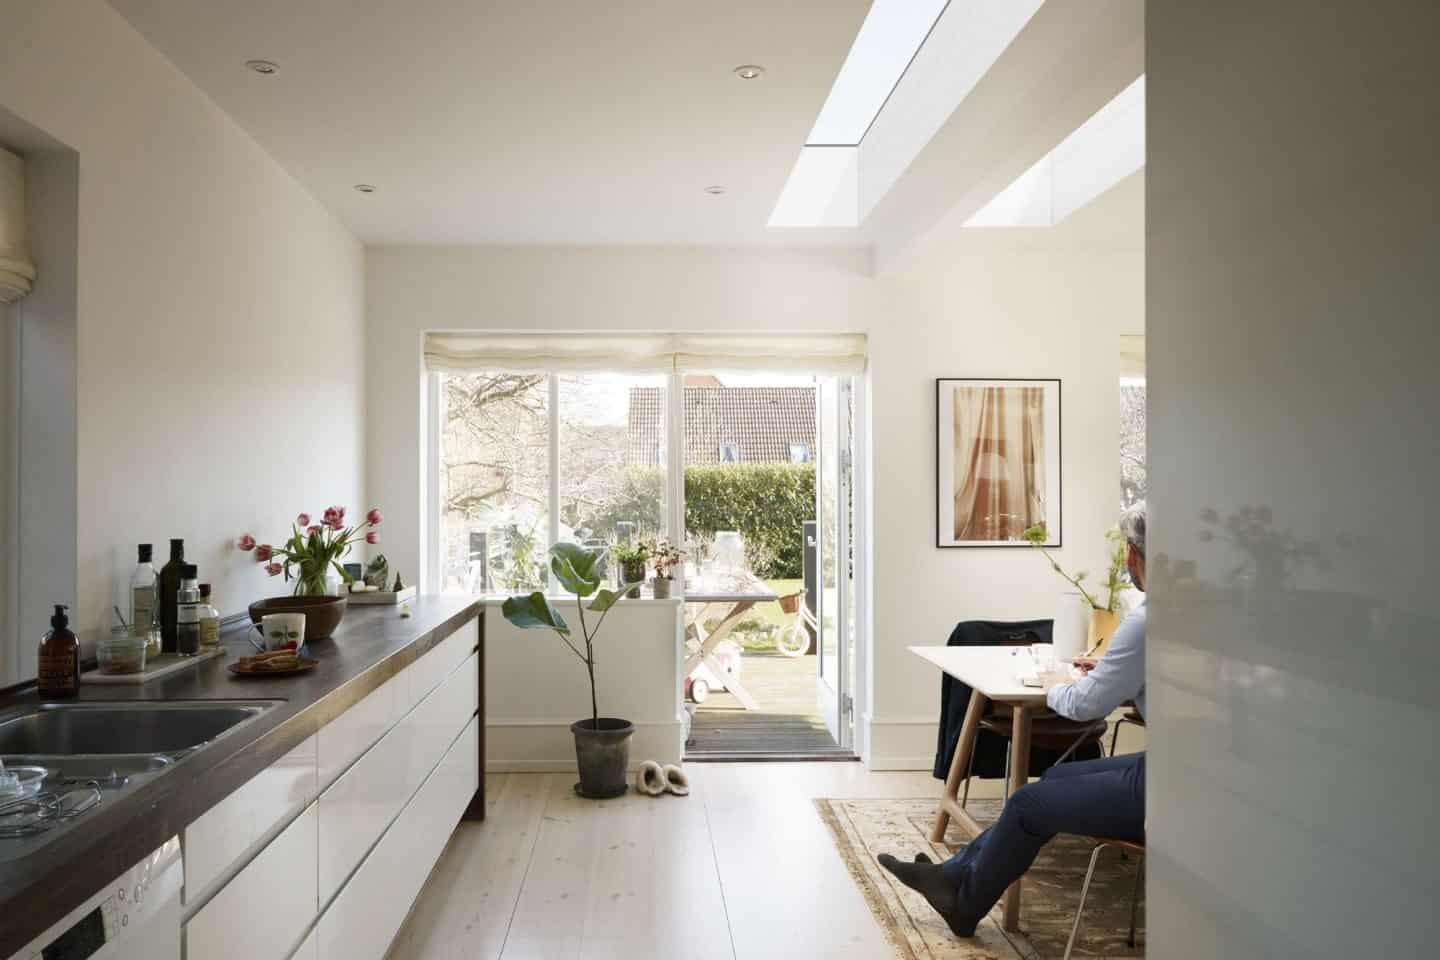 Vario by VELUX Bespoke Flat Roof Windows pictured above an open plan kitchen dining area